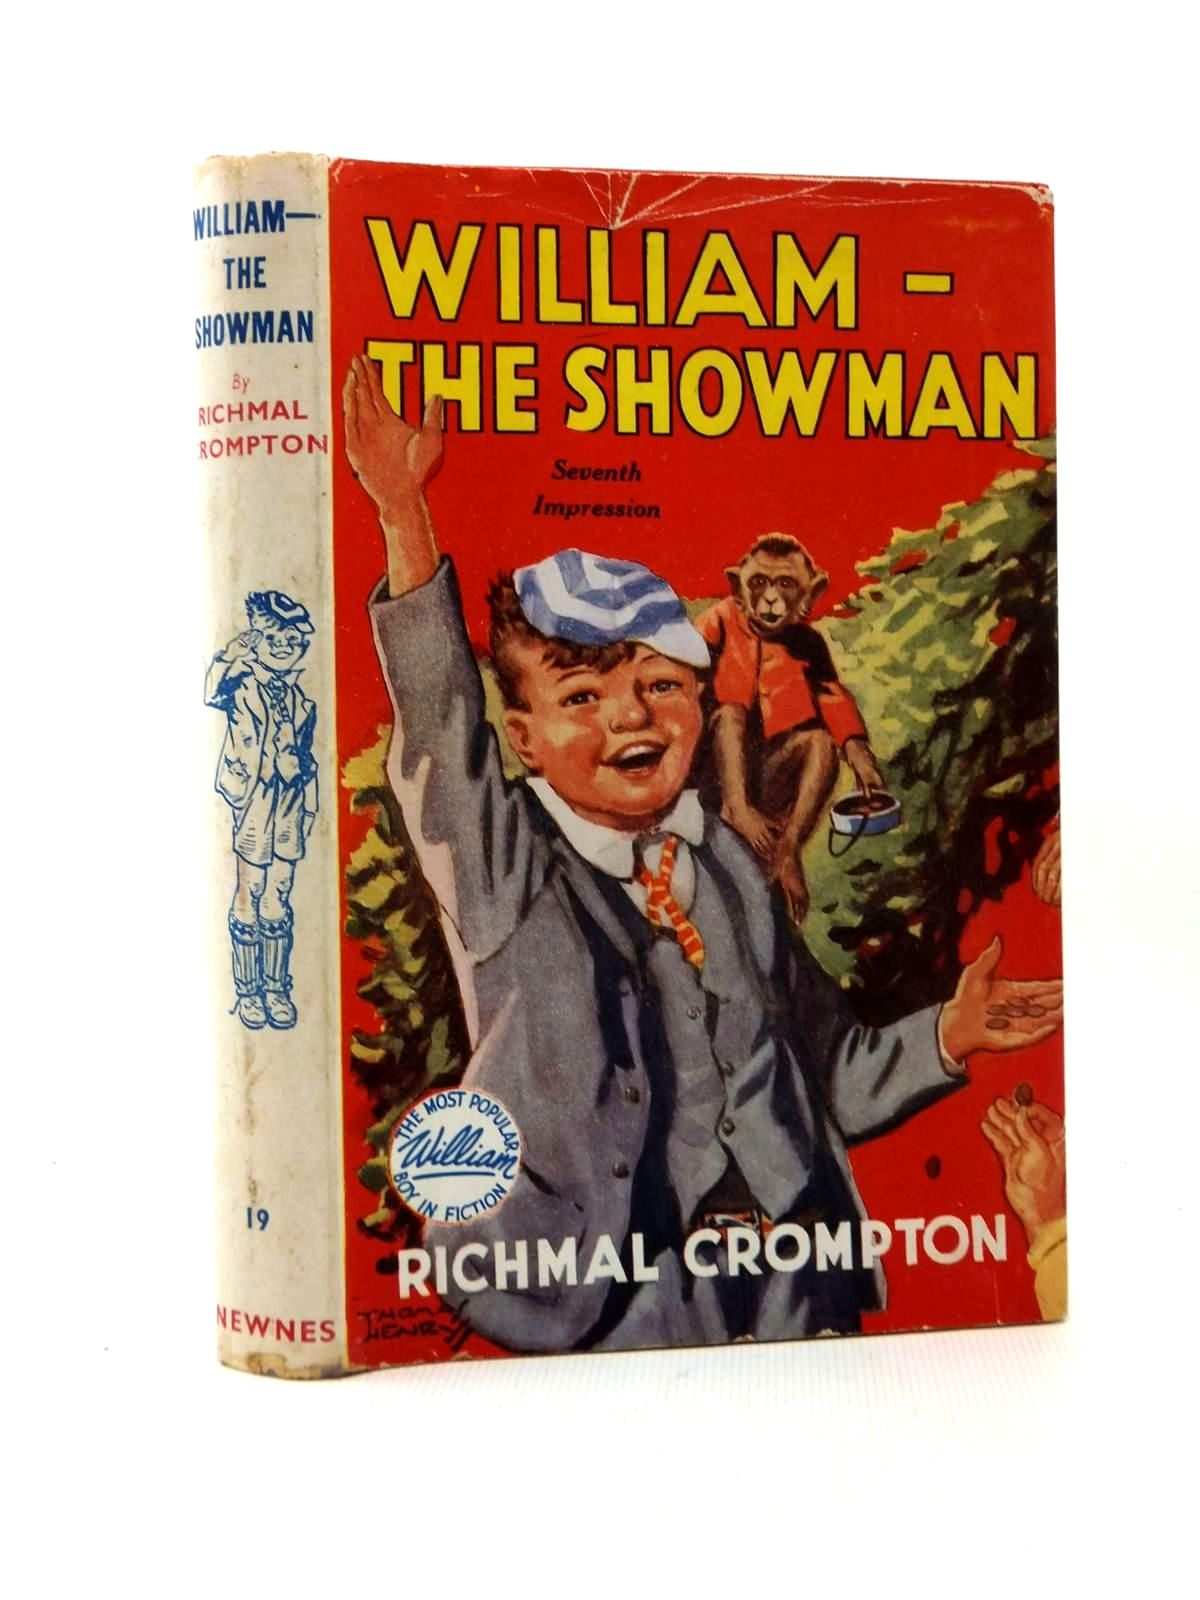 Cover of WILLIAM THE SHOWMAN by Richmal Crompton